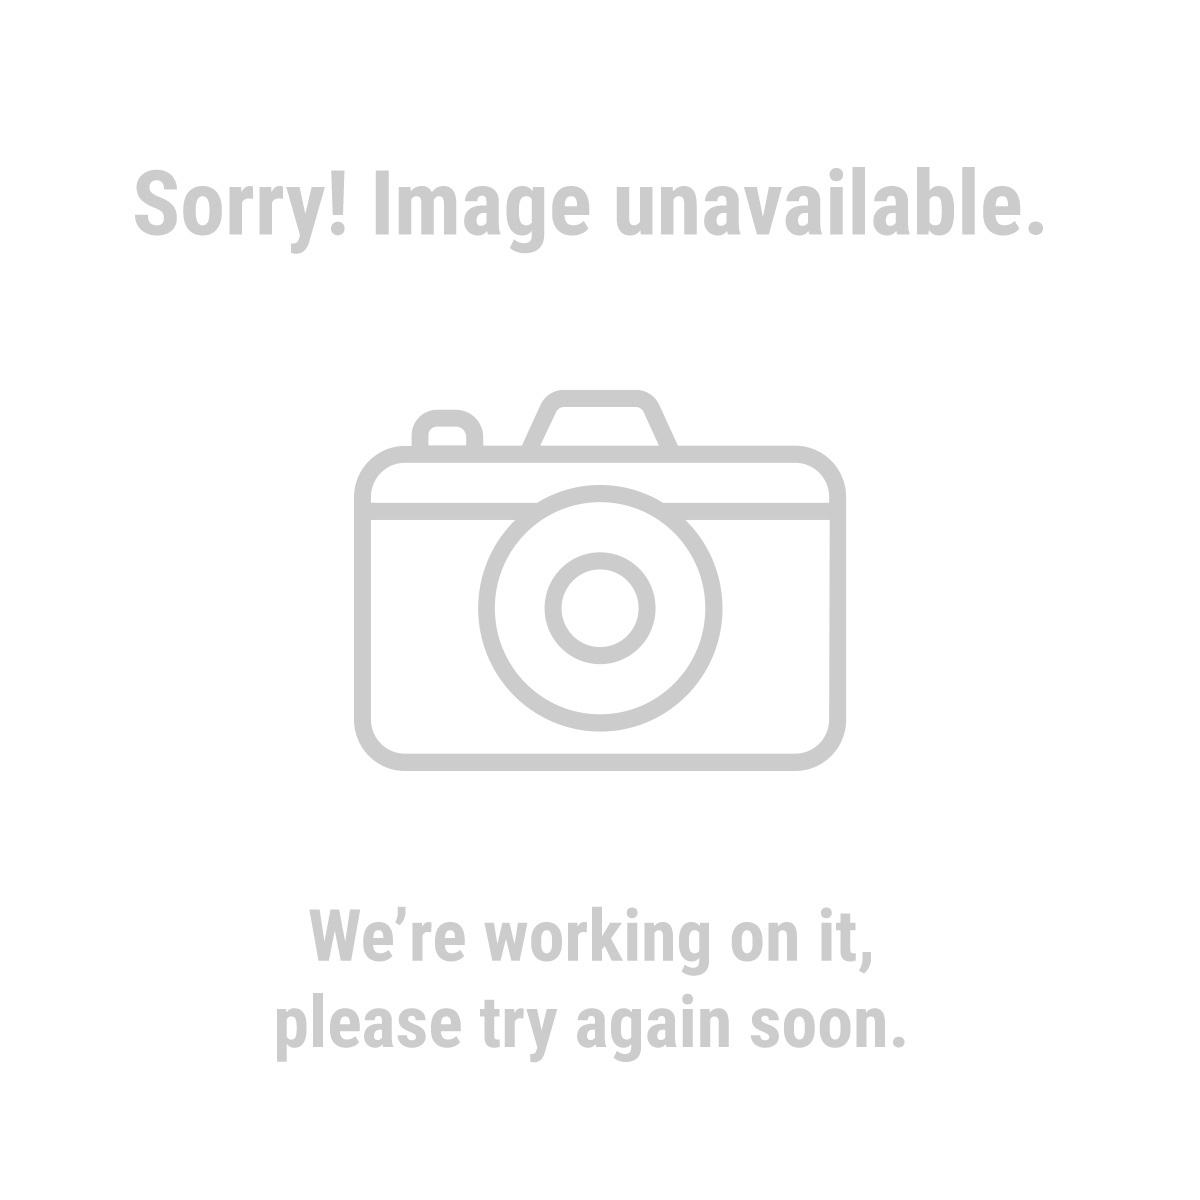 "Moly Carb 38133 5 Piece 7"" Circular Saw Blade  Assortment"